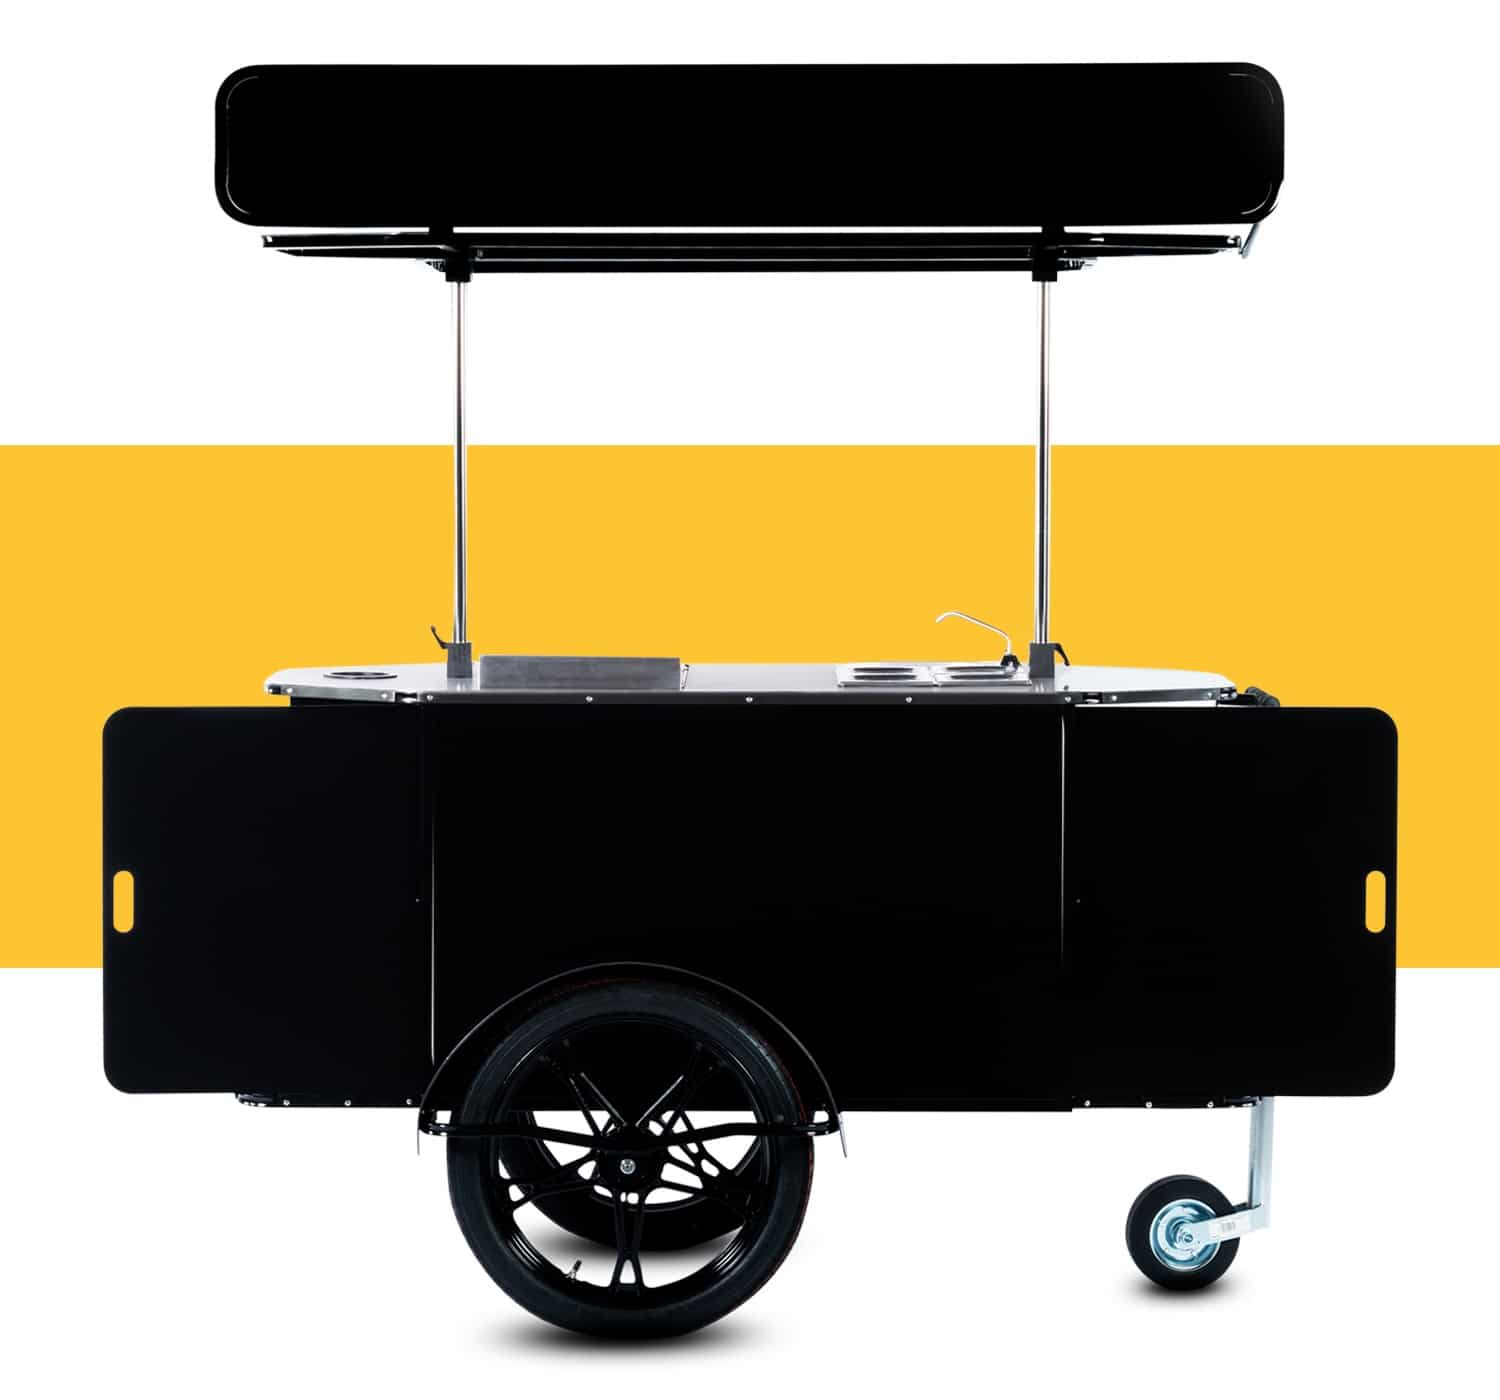 Hot dog cart for sale by Bizz On Wheels